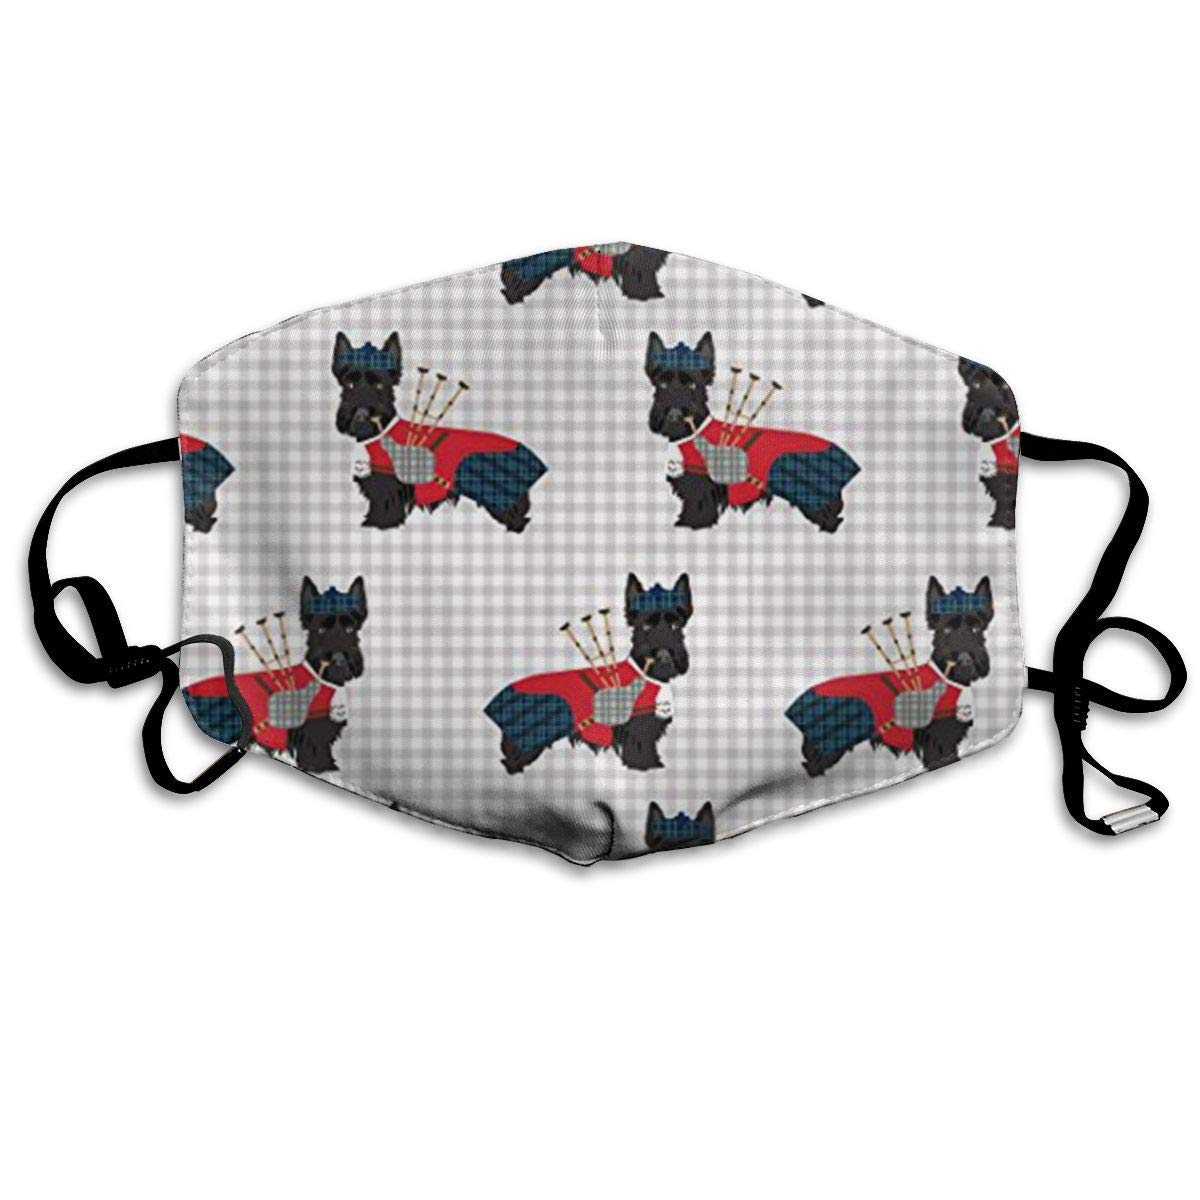 Daawqee Mascarillas, Scottie Dog with Bagpipes Allergy & Flu Mask – Comfortable, Washable Protection from Dust, Pollen, Allergens, Cold & Flu Germs with Antimicrobial; Asthma Mask